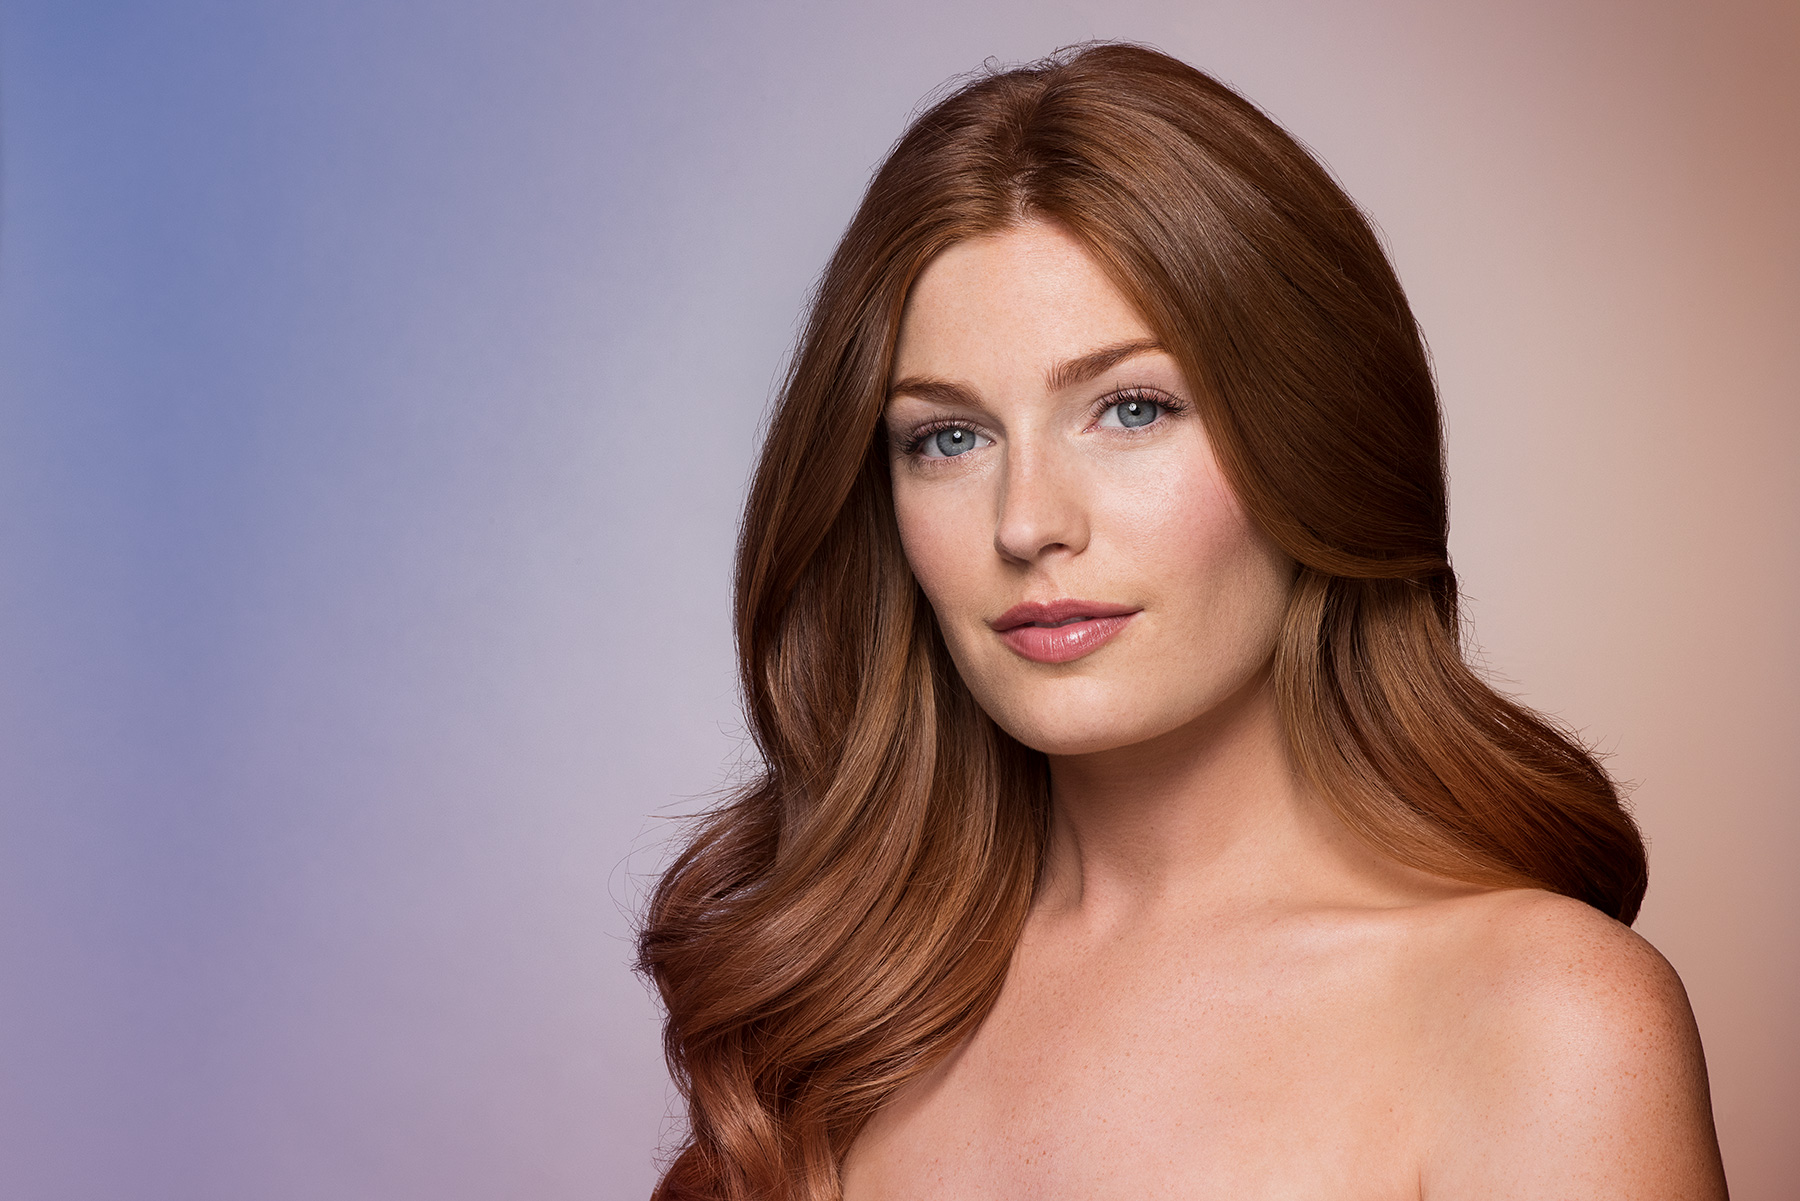 Studio portrait of model with wavy auburn hair. Photographed with a lilac and nude gradient background